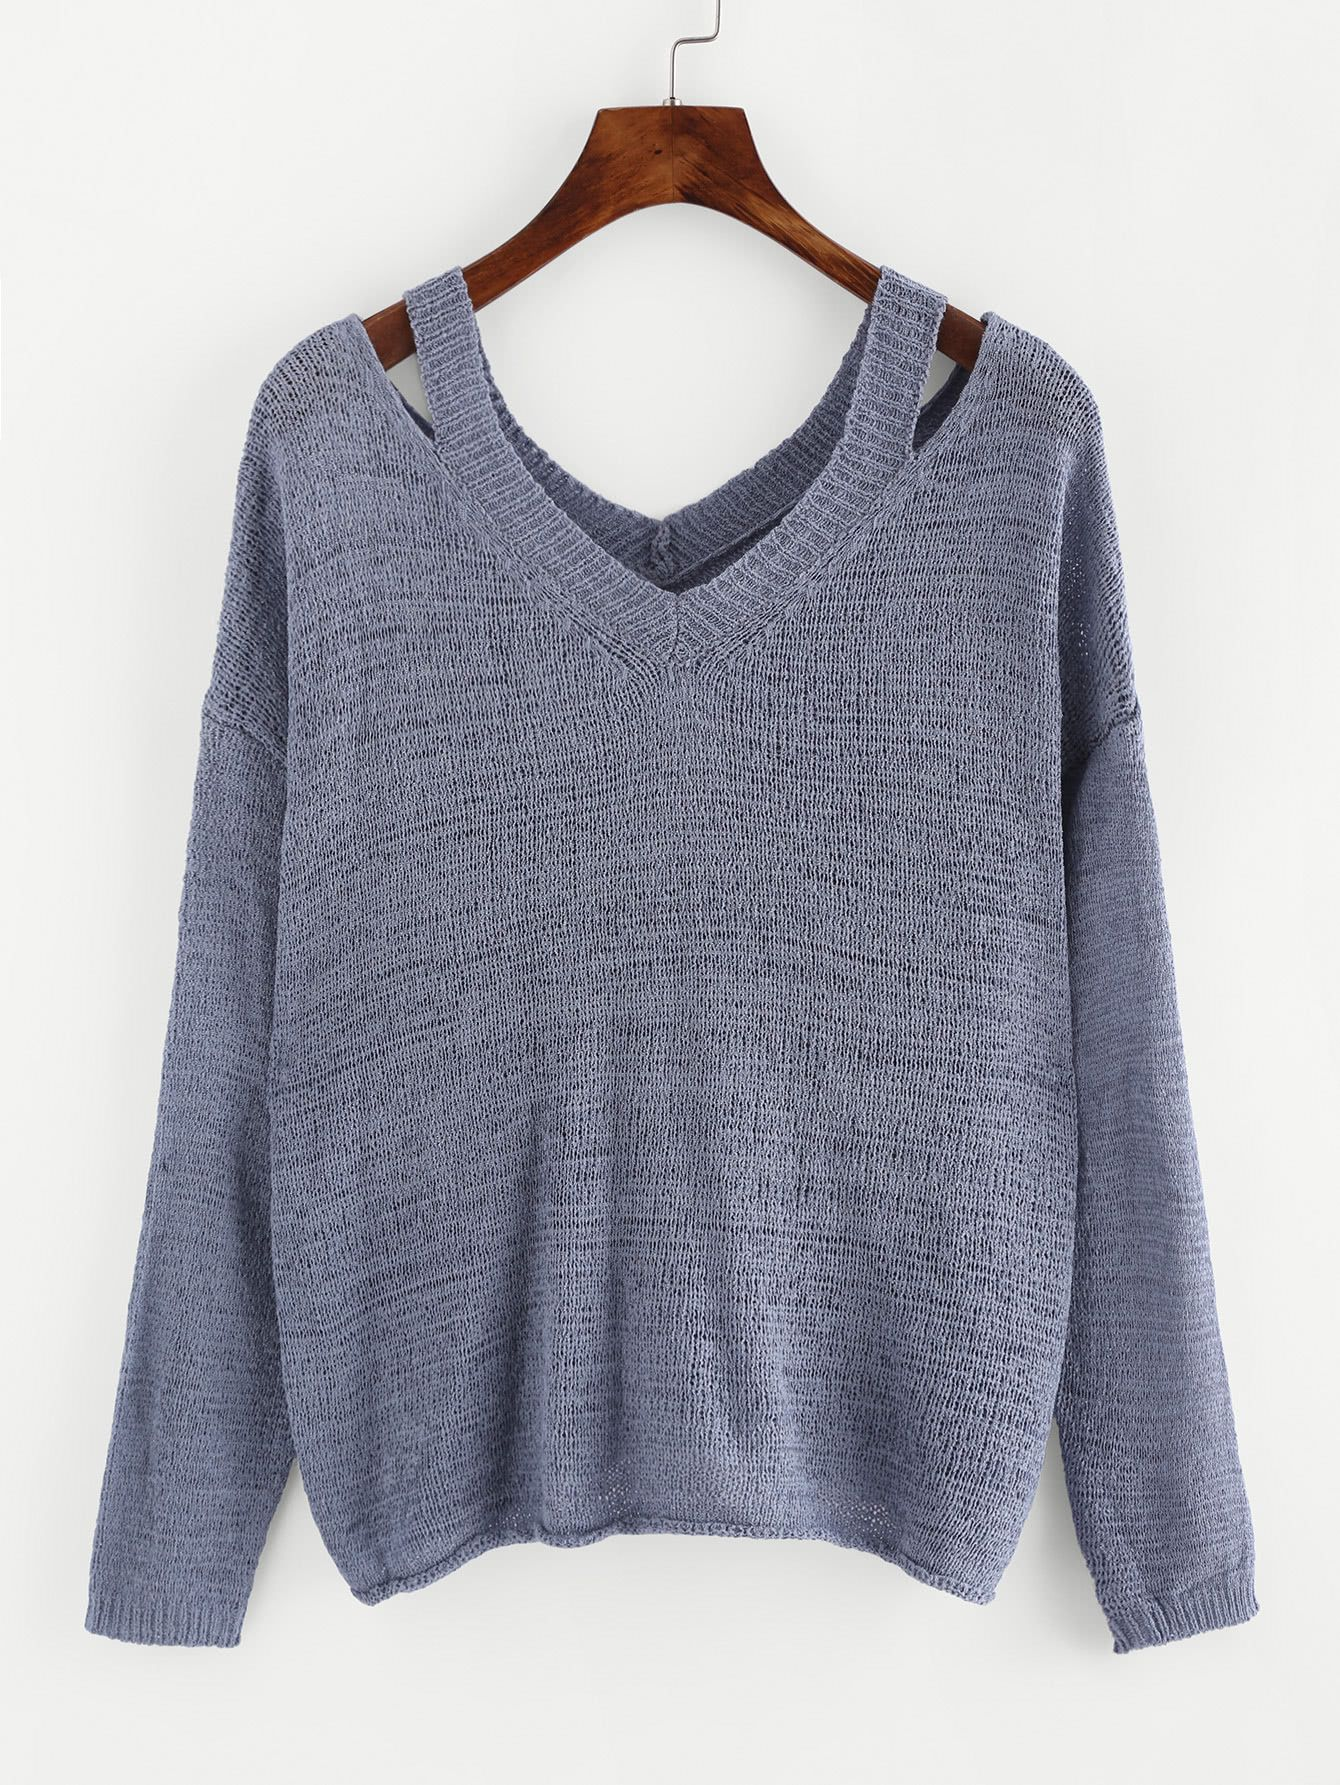 3491e1c148d Cut Out V Neckline Knit Sweater Factory - Shantou ZQ Sweater Factory ...